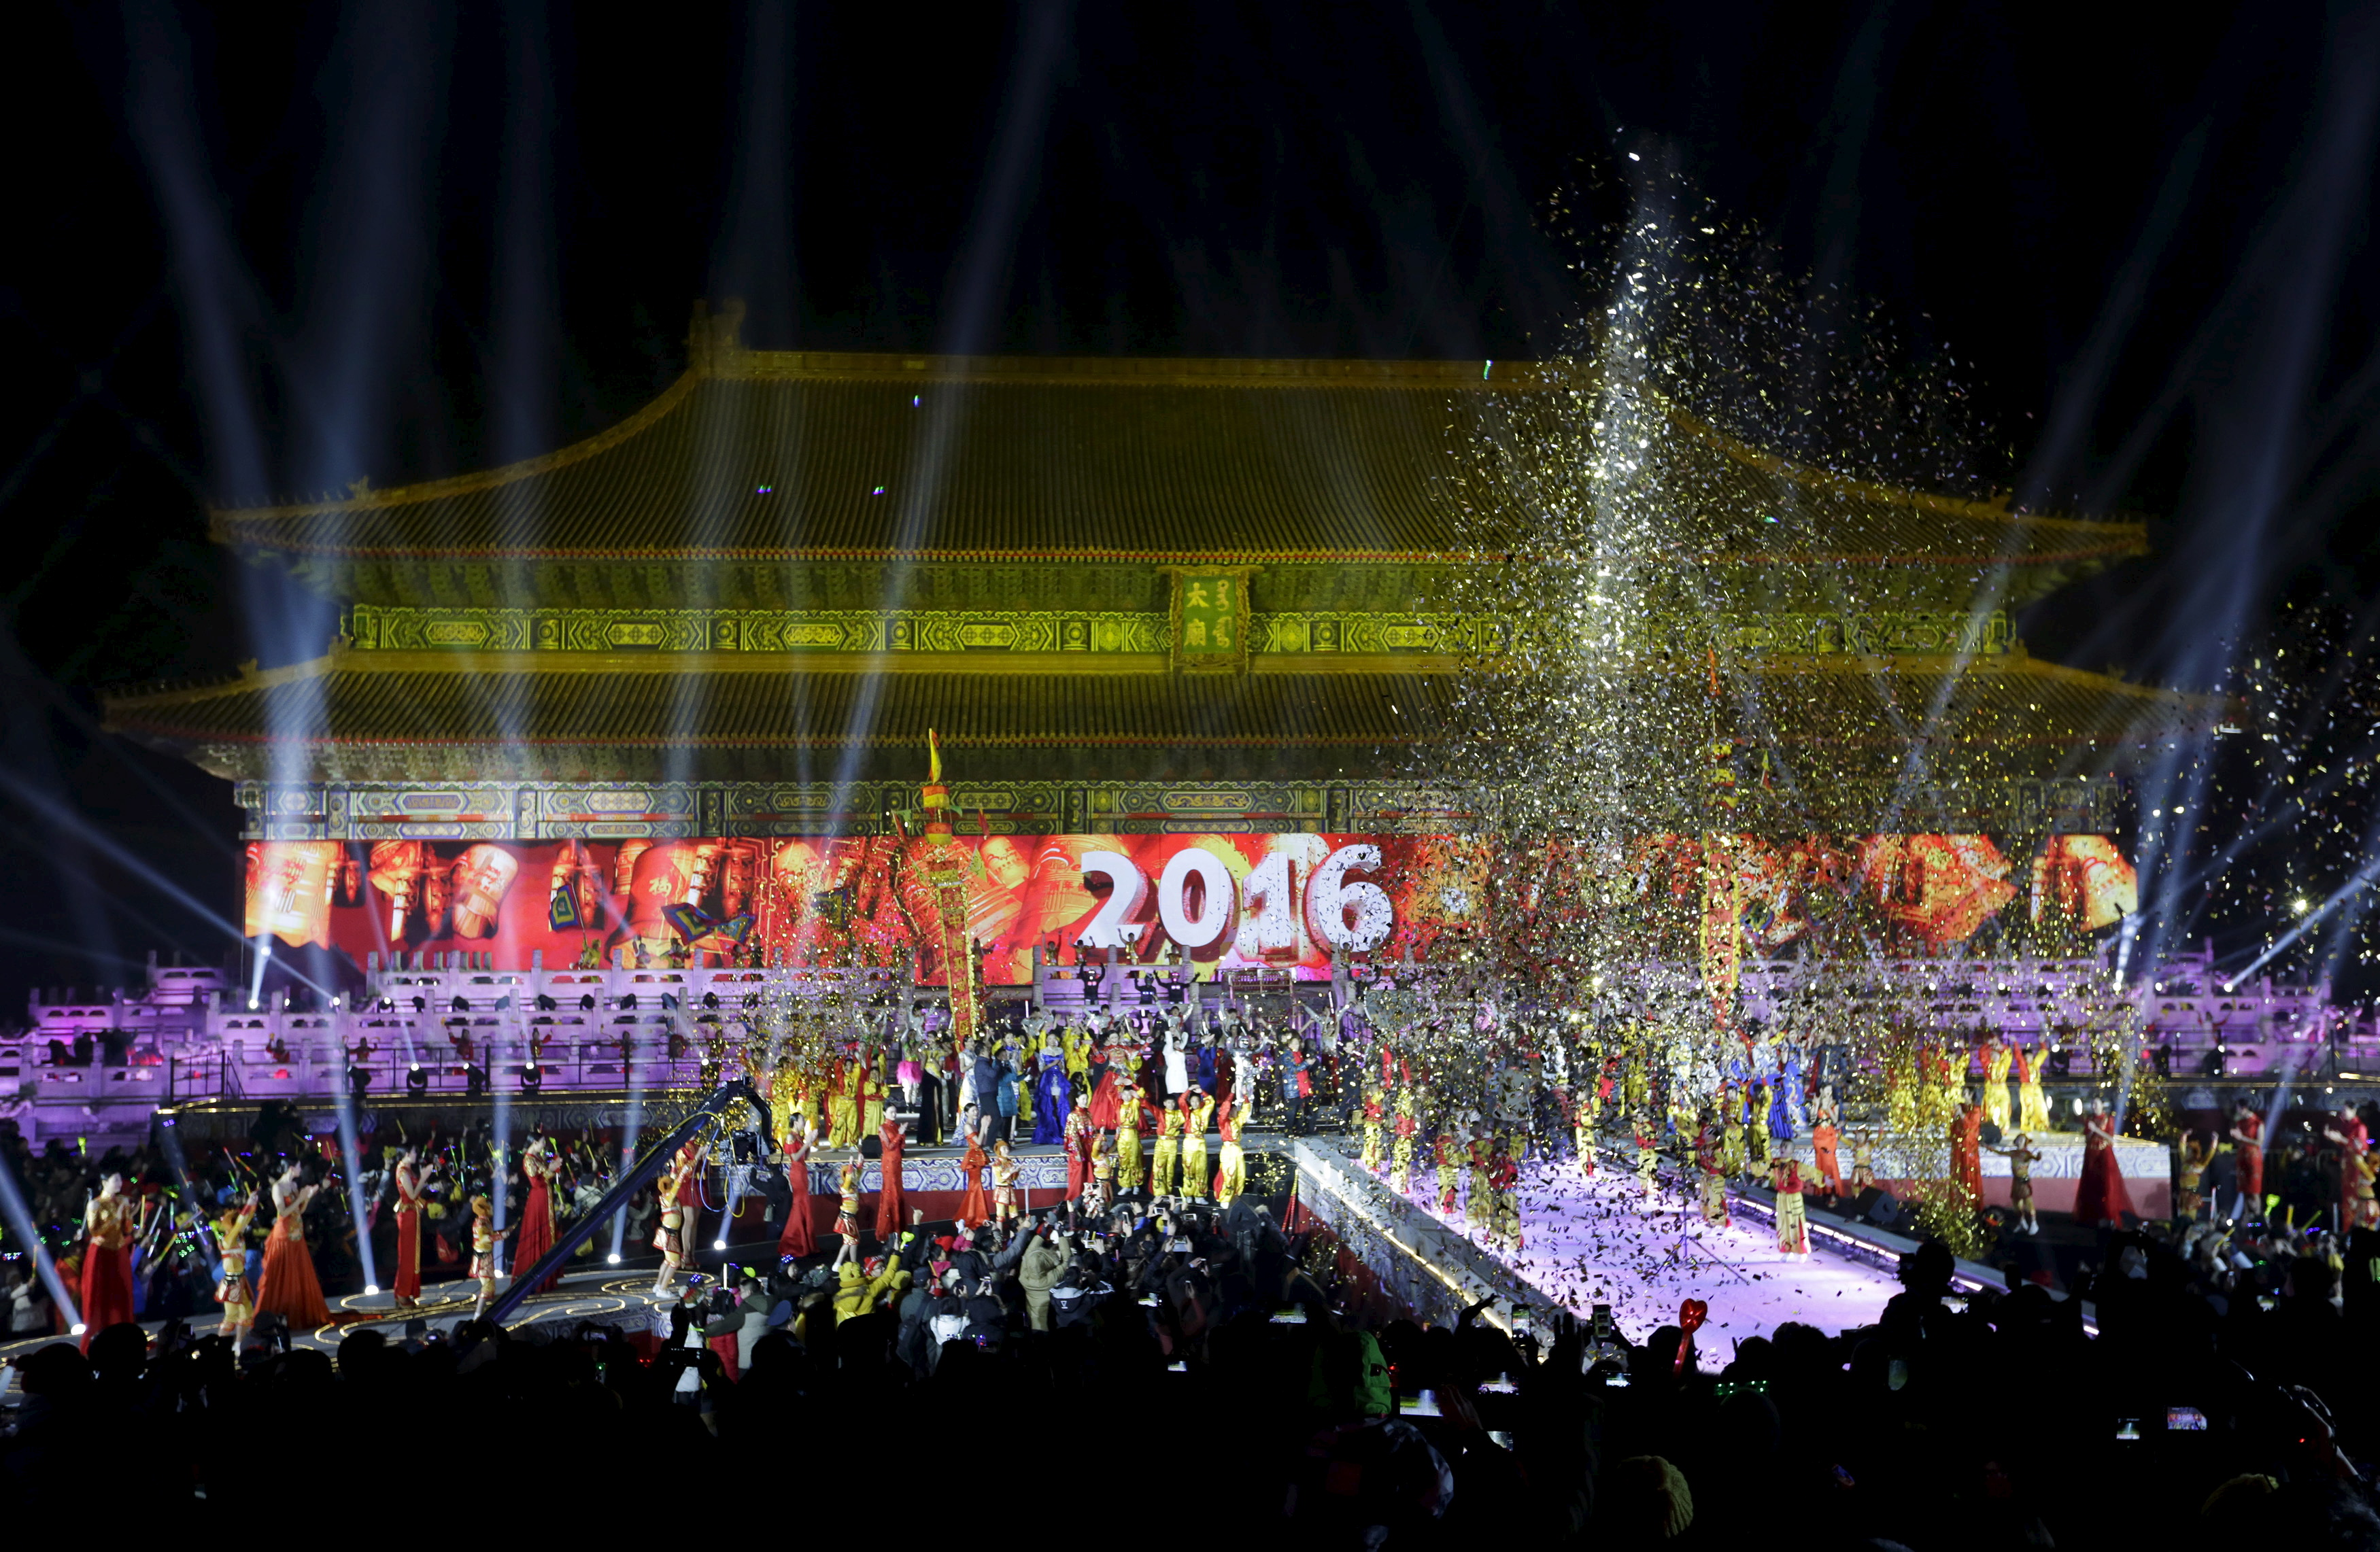 Dancers perform to celebrate the new year during a countdown event at Tai Miao, the imperial ancestral temple in the Forbidden City, in Beijing, China. Photo by Jason Lee/Reuters